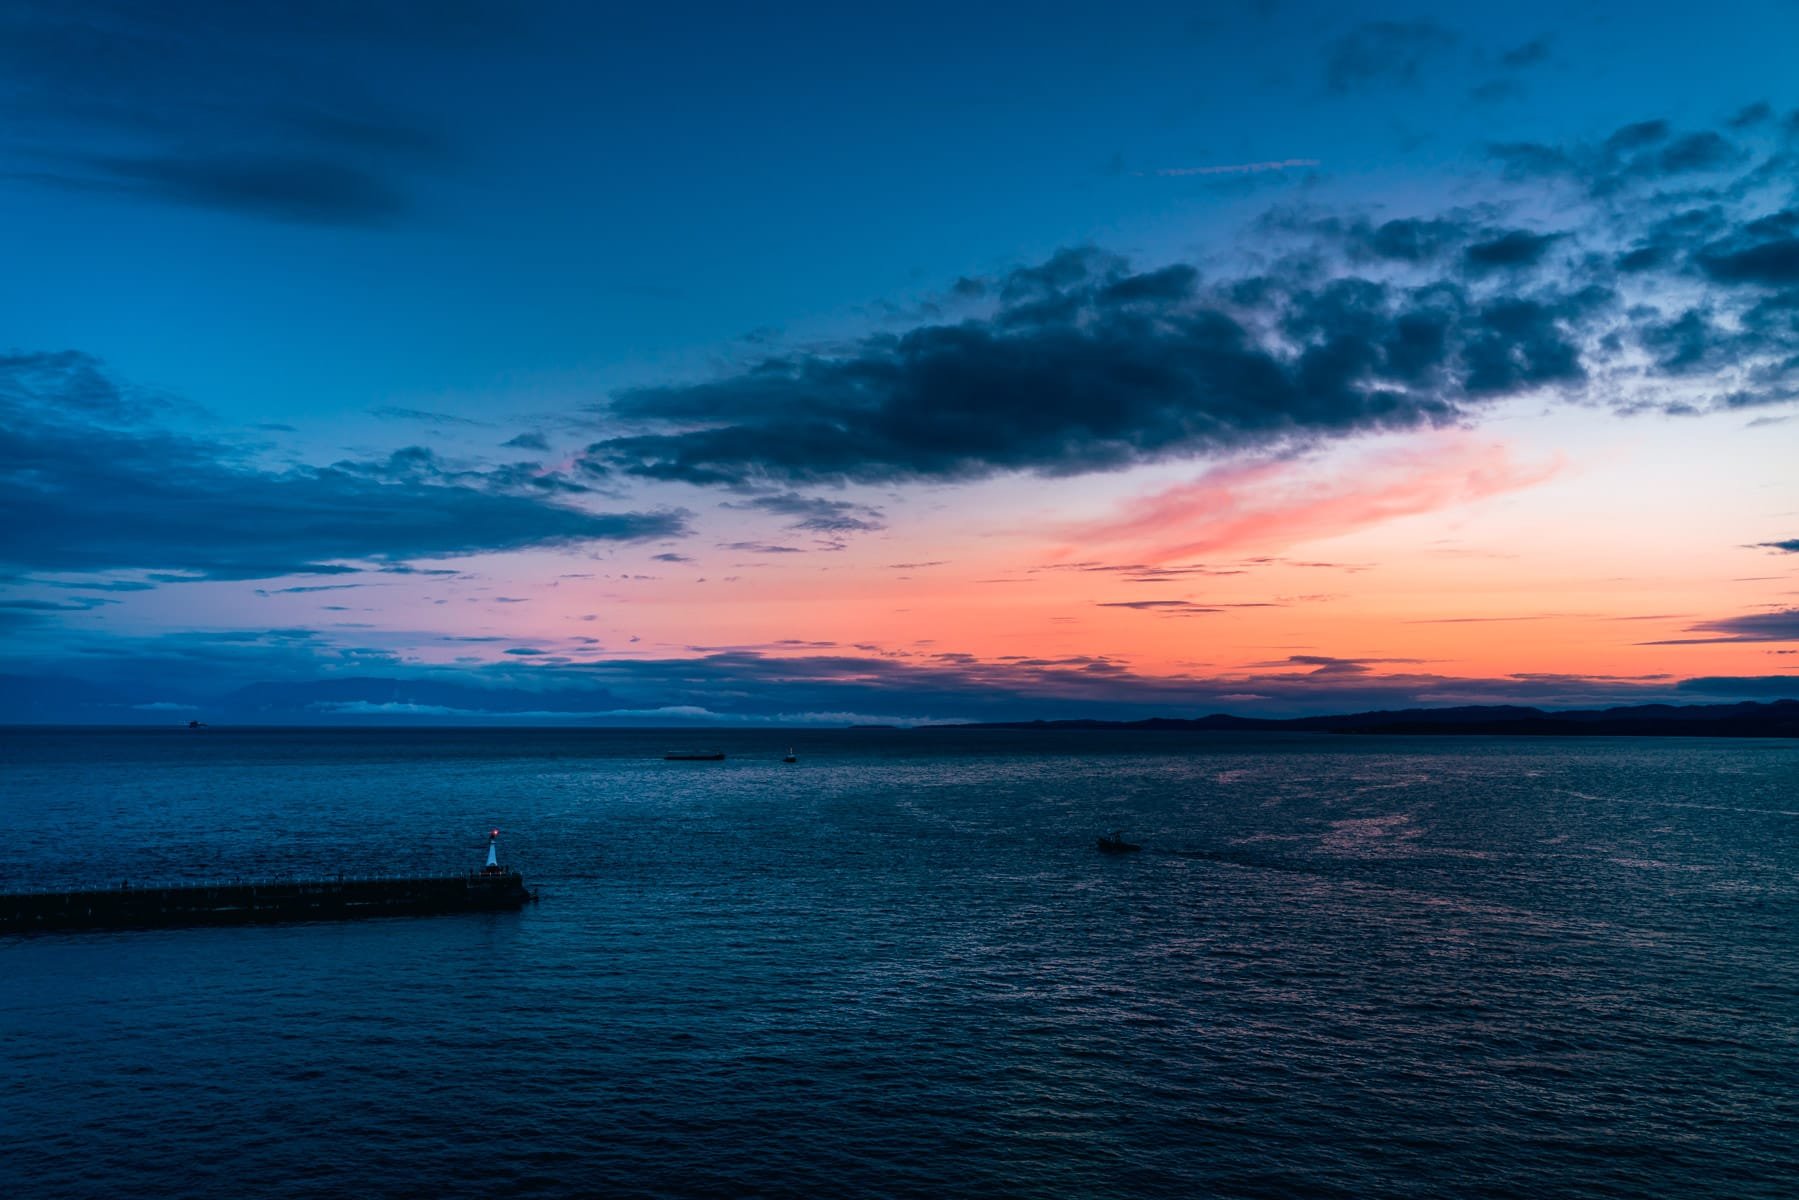 The sun sets on the mouth of Victoria Harbour, Victoria, British Columbia.